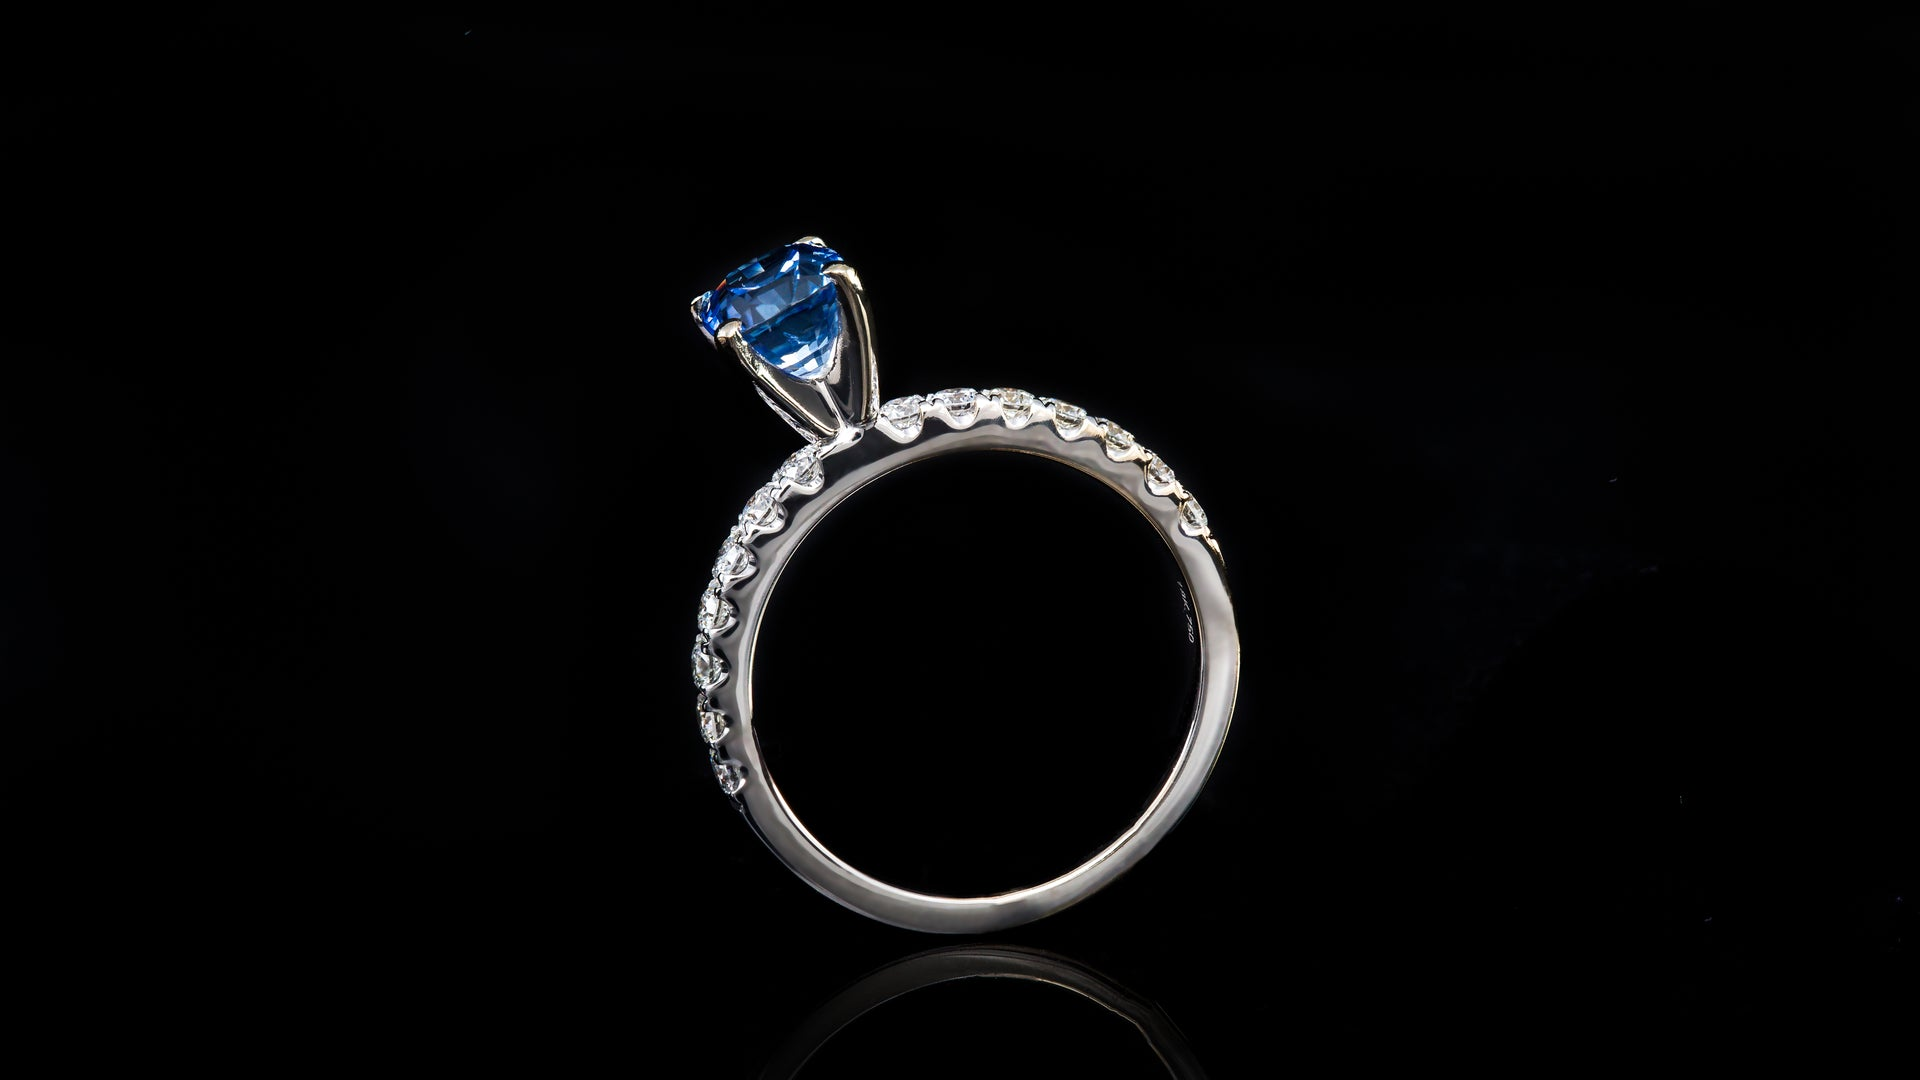 14K White Gold Four Prong Blue Sapphire Solitaire Engagement Ring